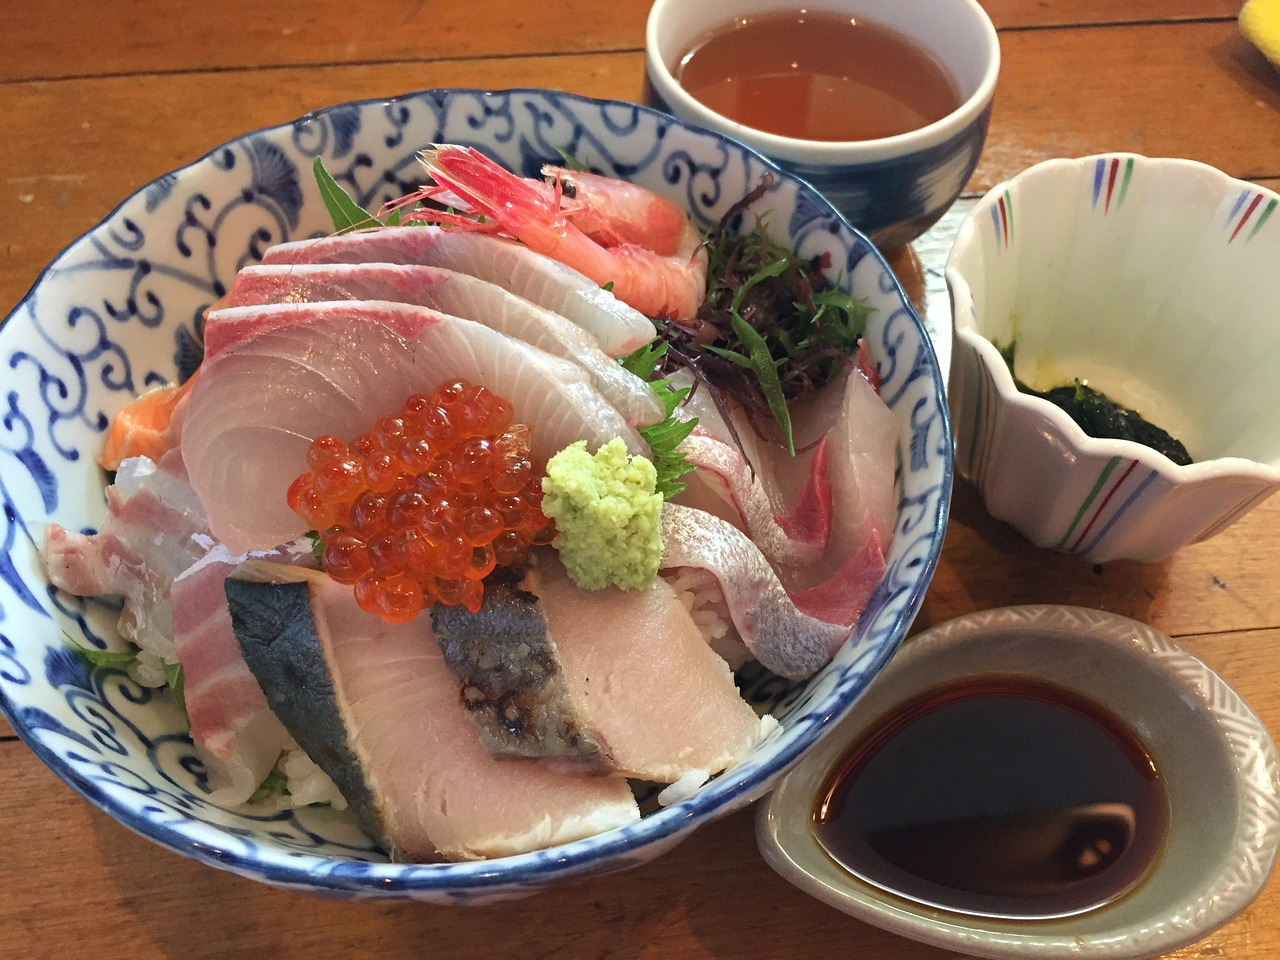 This is my go-to meal for fighting a cold. You can use any type of oily sashimi - salmon, salmon roe (pictured), mackerel, sardines, halibut (pictured), albacore tuna. This picture shows some red snapper too. The omega 3 from the fish is lubricating for the mucous membranes of the throat, anti-inflammatory and the protein content improves recovery from a virus.Depending on the thickness of the sashimi, adding raw fish to hot broth cooks it, so add it last minute as the goal is to have it as rare as possible.  The second step is to chop up available spicy and pungeant veggies such as radish, daikon, watercress, mustard greens, arugula, radish,mustard or broccoli sprouts, broccolini, cabbage, nasturtium leaves/flowers, onions, leeks, ginger, garlic, hot peppers, jalapenos peppers,black pepper, white pepper and a big dollop of horseradish or japanese horseradish, known as wasabe (pictured).   These veggies provide good clearing of mucous, as do all the peppery veggies. Plus they help to increase a fever, which deactivates a virus. Immune mushrooms such as shitake are also excellent in this soup for immune boosting properties. The spicier the better, as long as you can enjoy it.  The last step is to pour the broth - I use whatever broth I have around - it could be the  potassium broth , chicken broth, veggie broth or  dashi .  Ingredients: Serves 1 (needs to be prepared fresh each time, as cooked veggies lose their mucous fighting properties)  1 cups of your favorite home-made stock  1/2 pound of the freshest sushi grade oily fish you can get (from a fish market, or sushi takeout restaurant)  1/4 cup fresh shitake mushrooms, or reconstituted dried ones- finely chopped  1/3 cup chopped watercress  1/2 tsp finely chopped chili pepper (if not avoiding nightshades)  1 T chopped Scallions  1 teaspoon of finely chopped ginger  1/2 tsp of wasabi or horseradish  1 lemon wedge  1 T chopped cilantro  Other vegetables (radish, daikon, chopped garlic, etc)  Directions:  Bring broth